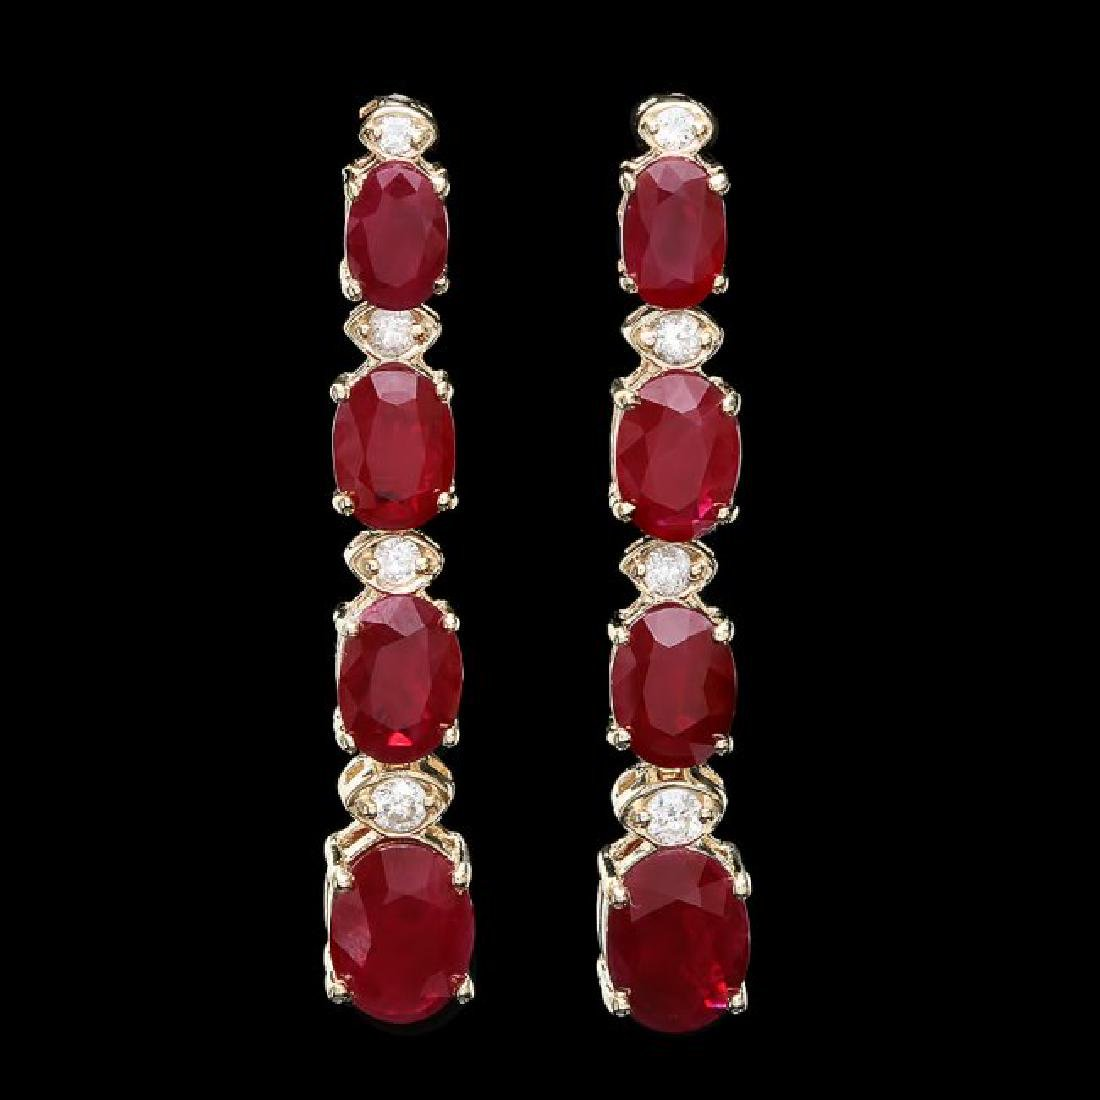 14k Gold 7.00ct Ruby 0.30ct Diamond Earrings